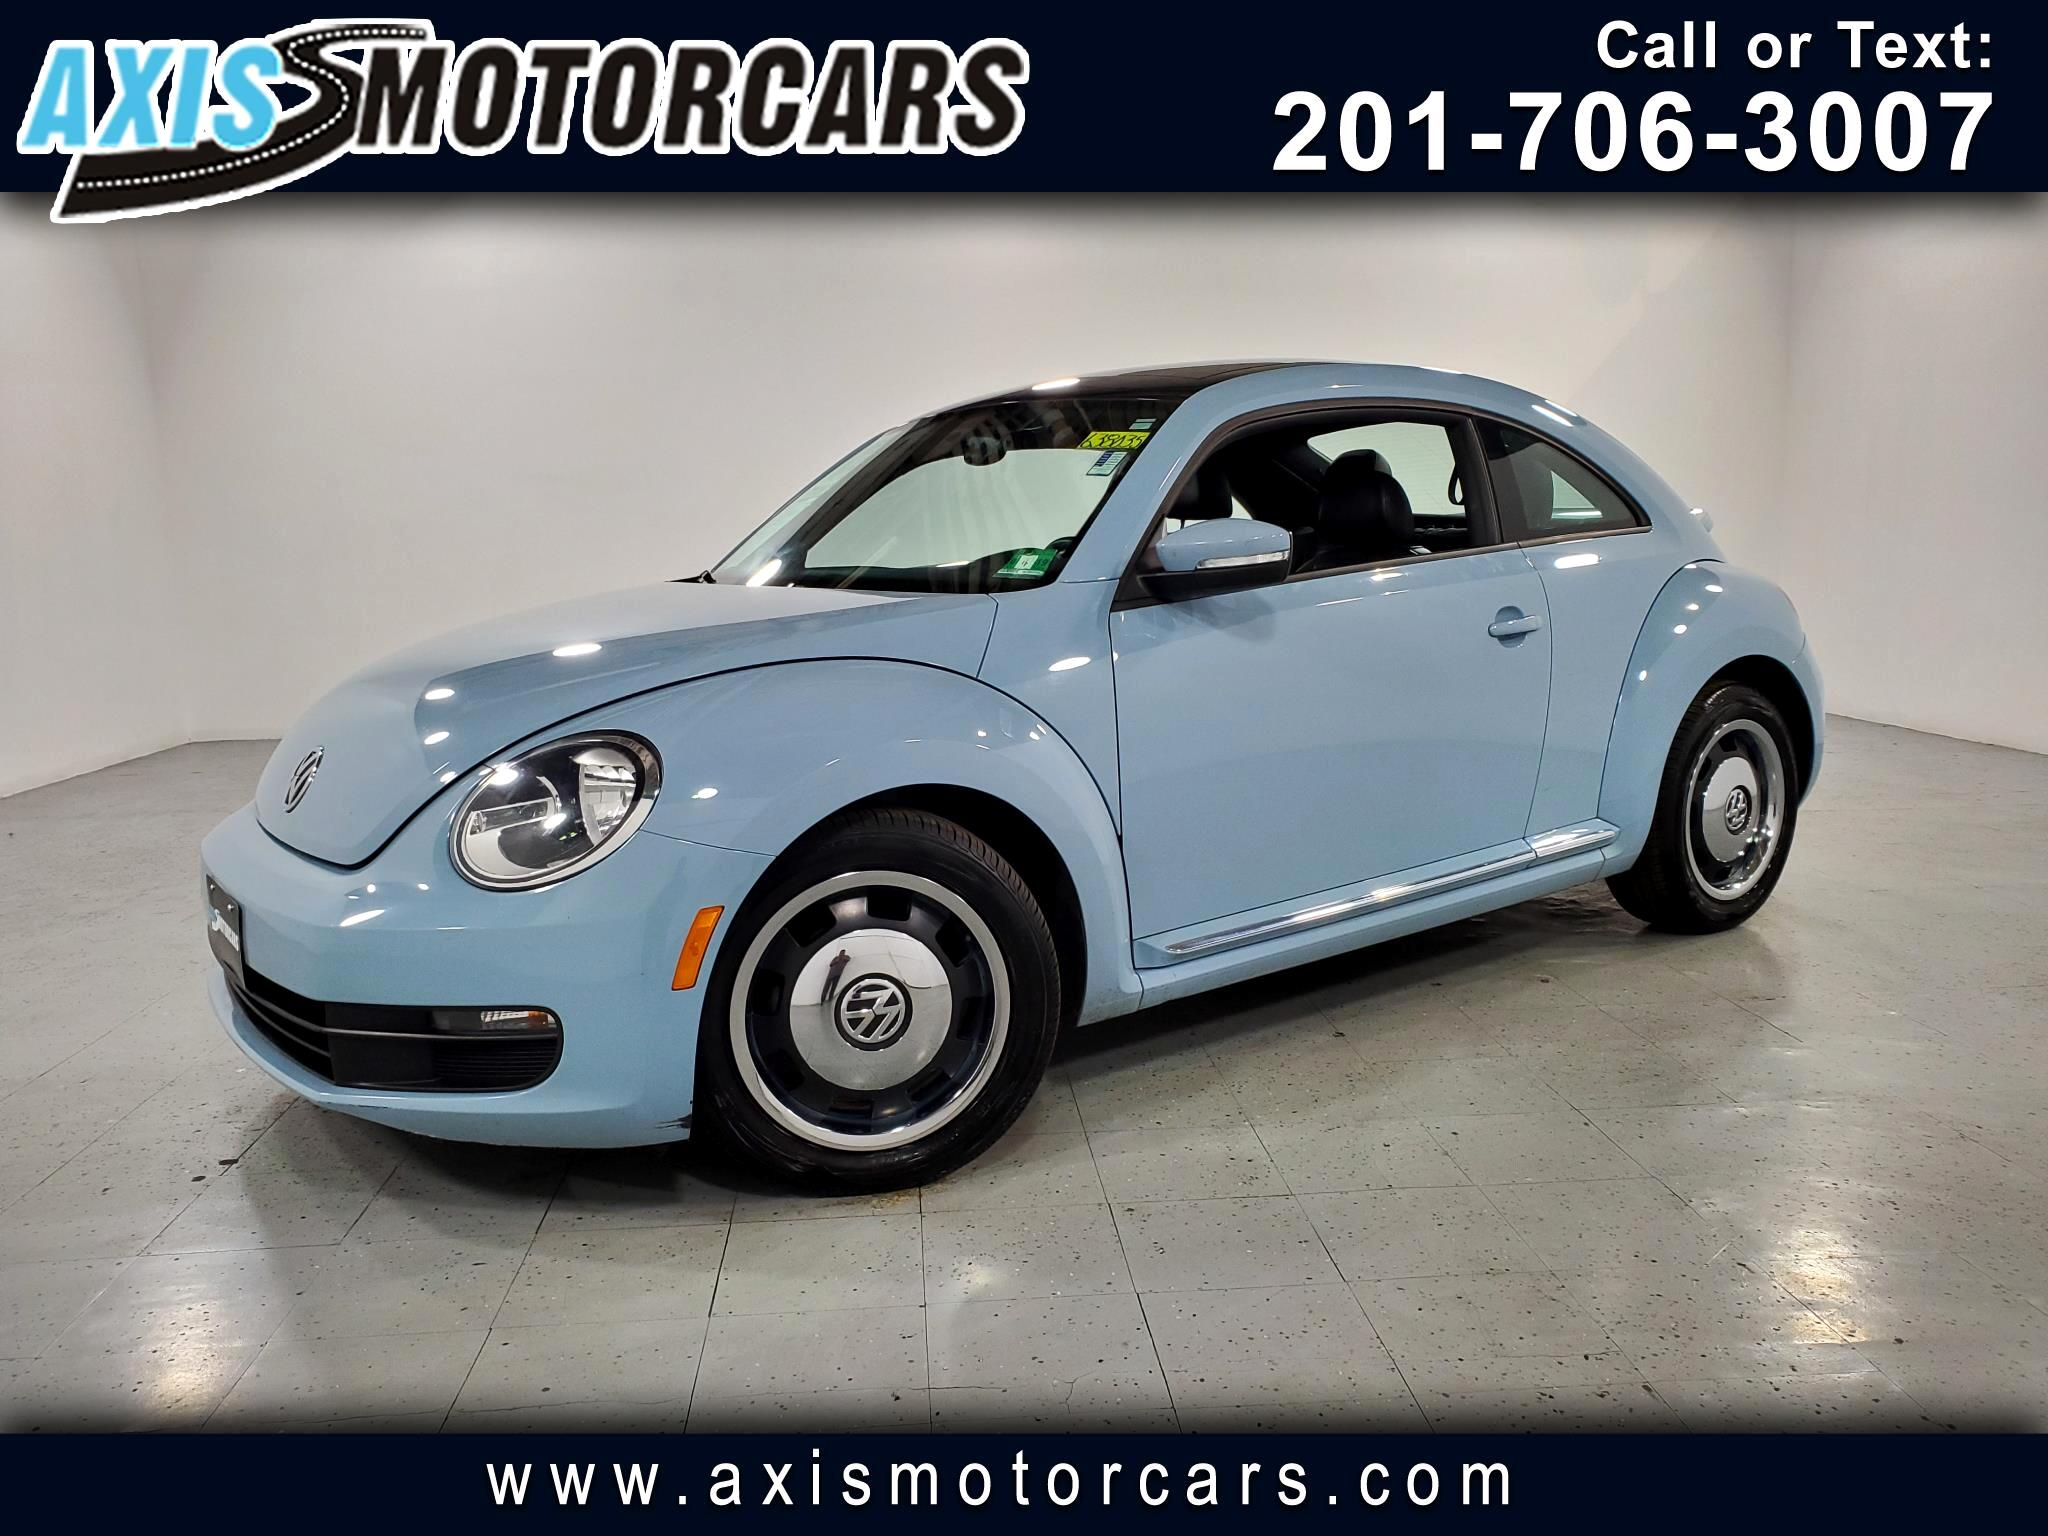 2012 Volkswagen Beetle 2dr Cpe w/Sunroof Leather